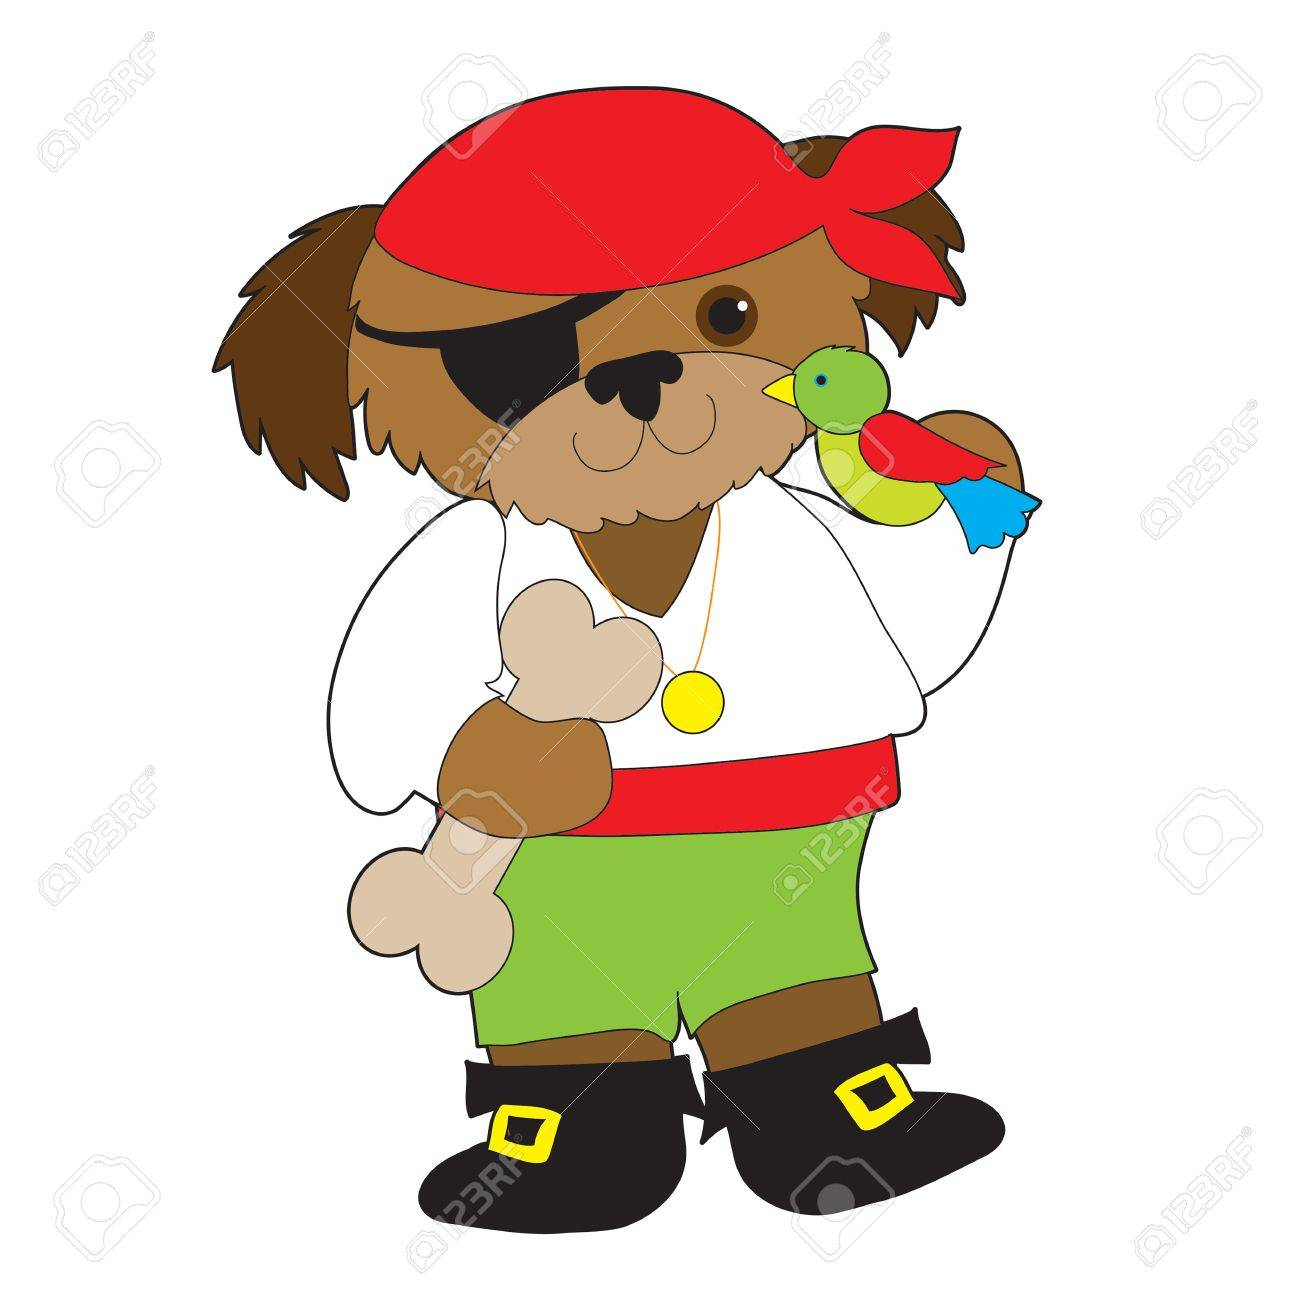 A dog dressed as a pirate has a parrot on one shoulder and is holding a large dog bone - 75731358